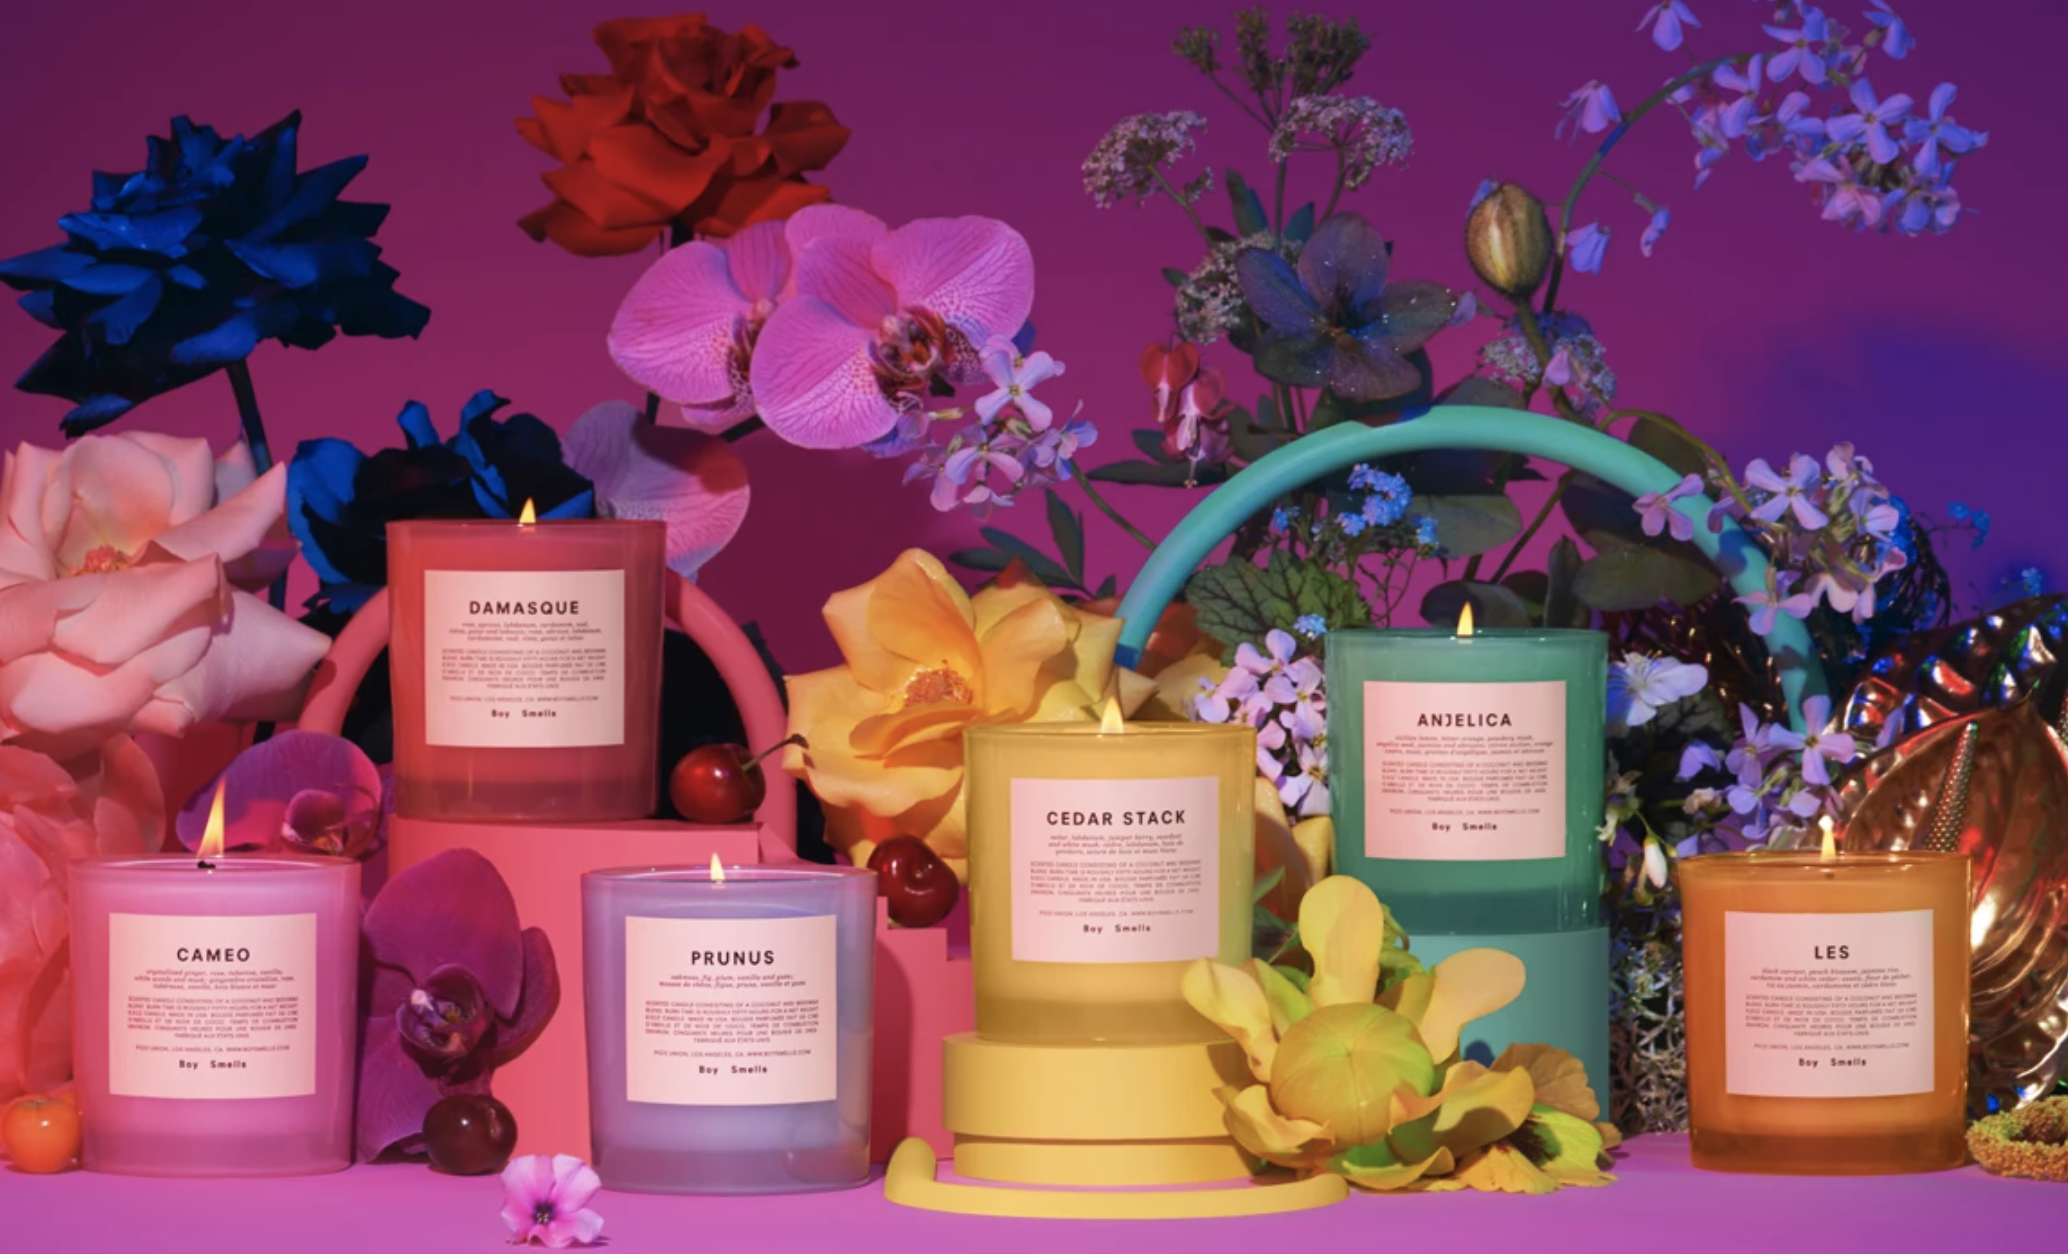 Boy Smells' Pride candle collection featuring six colorful candles, all with different scents